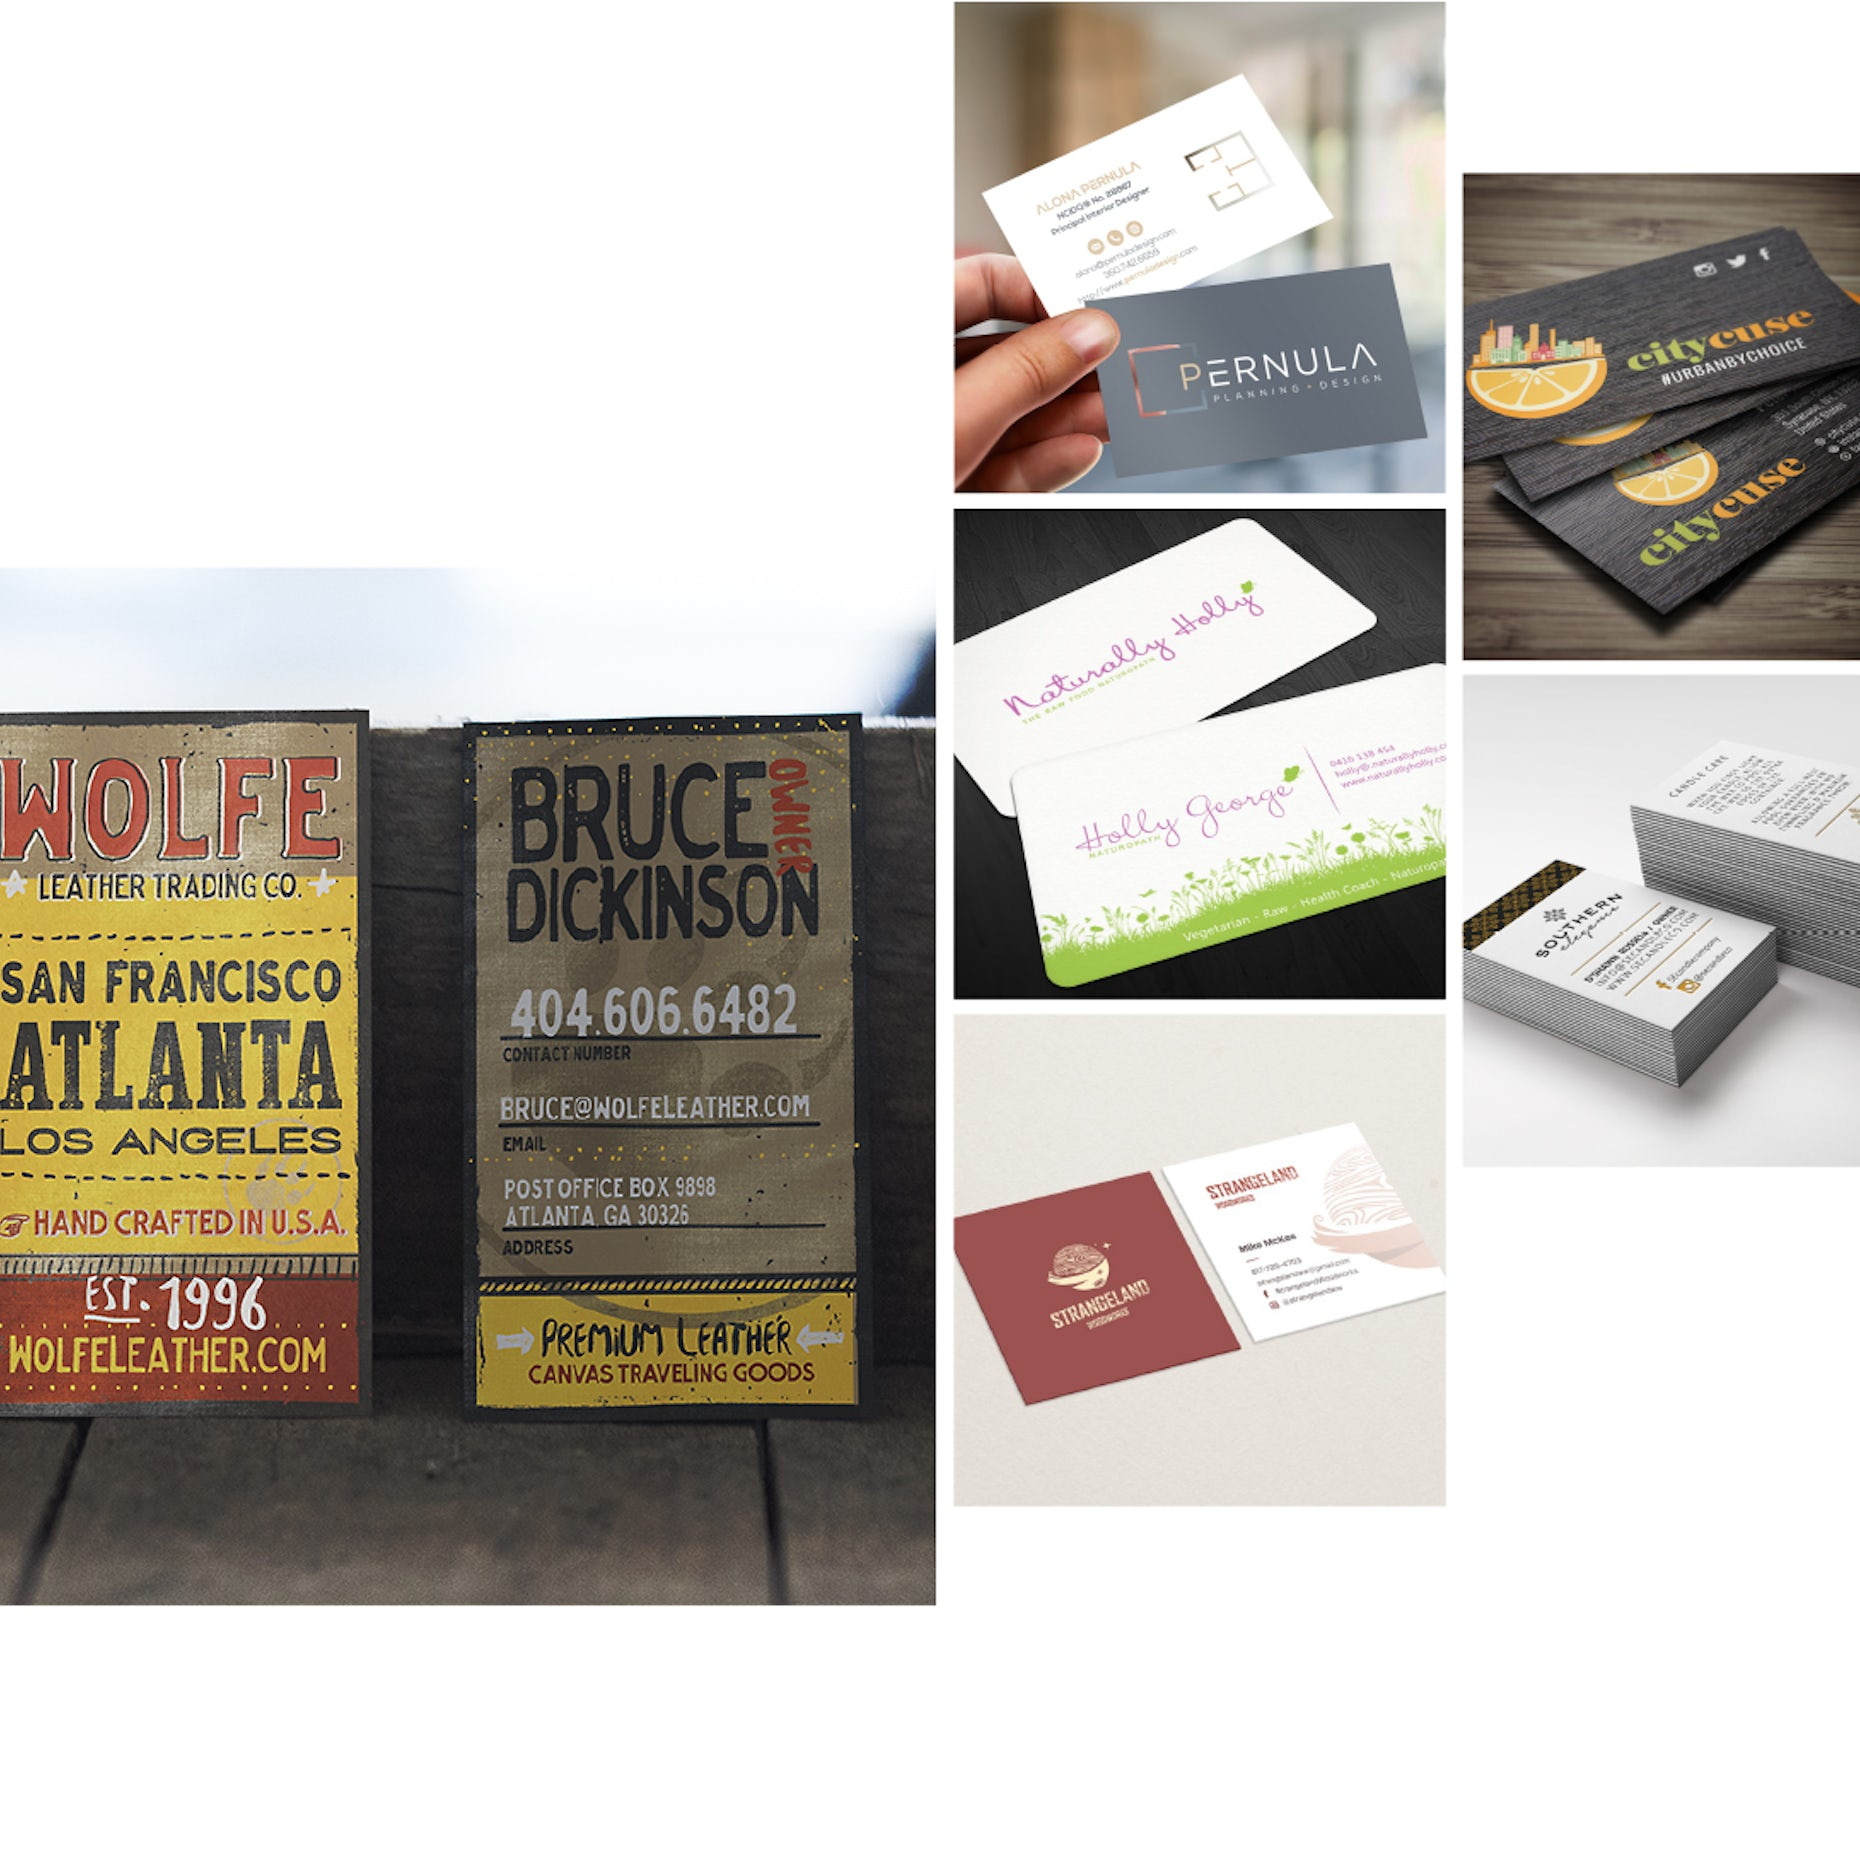 ab76b766baafb The best business card fonts to make you stand out - 99designs